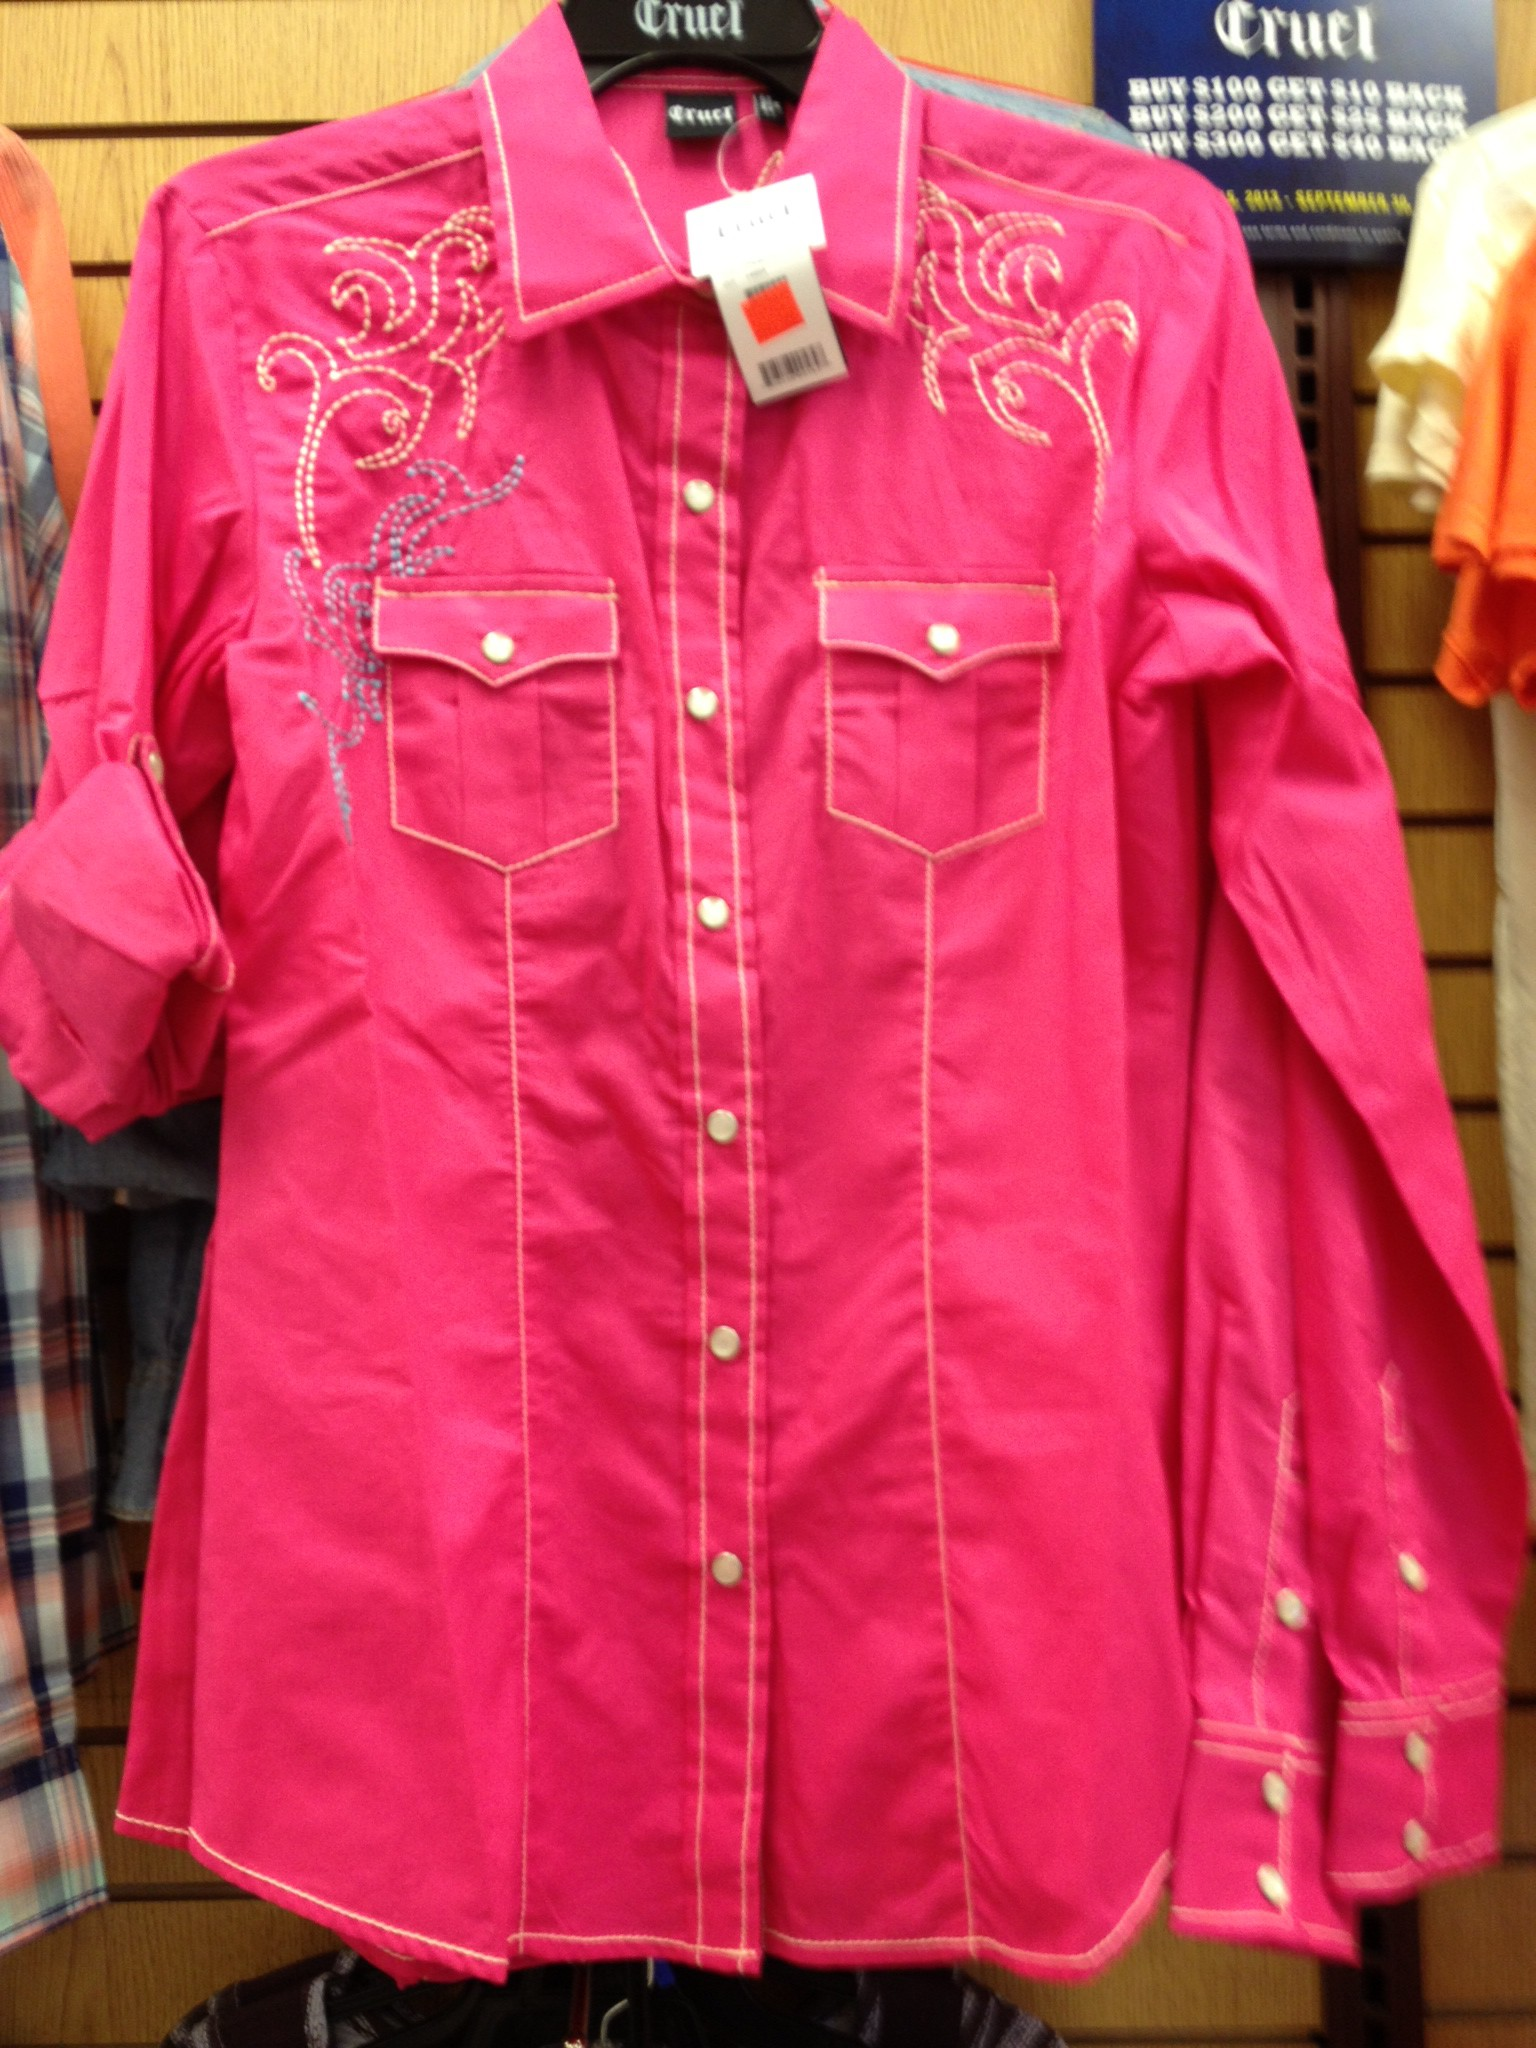 Country girl clothing stores